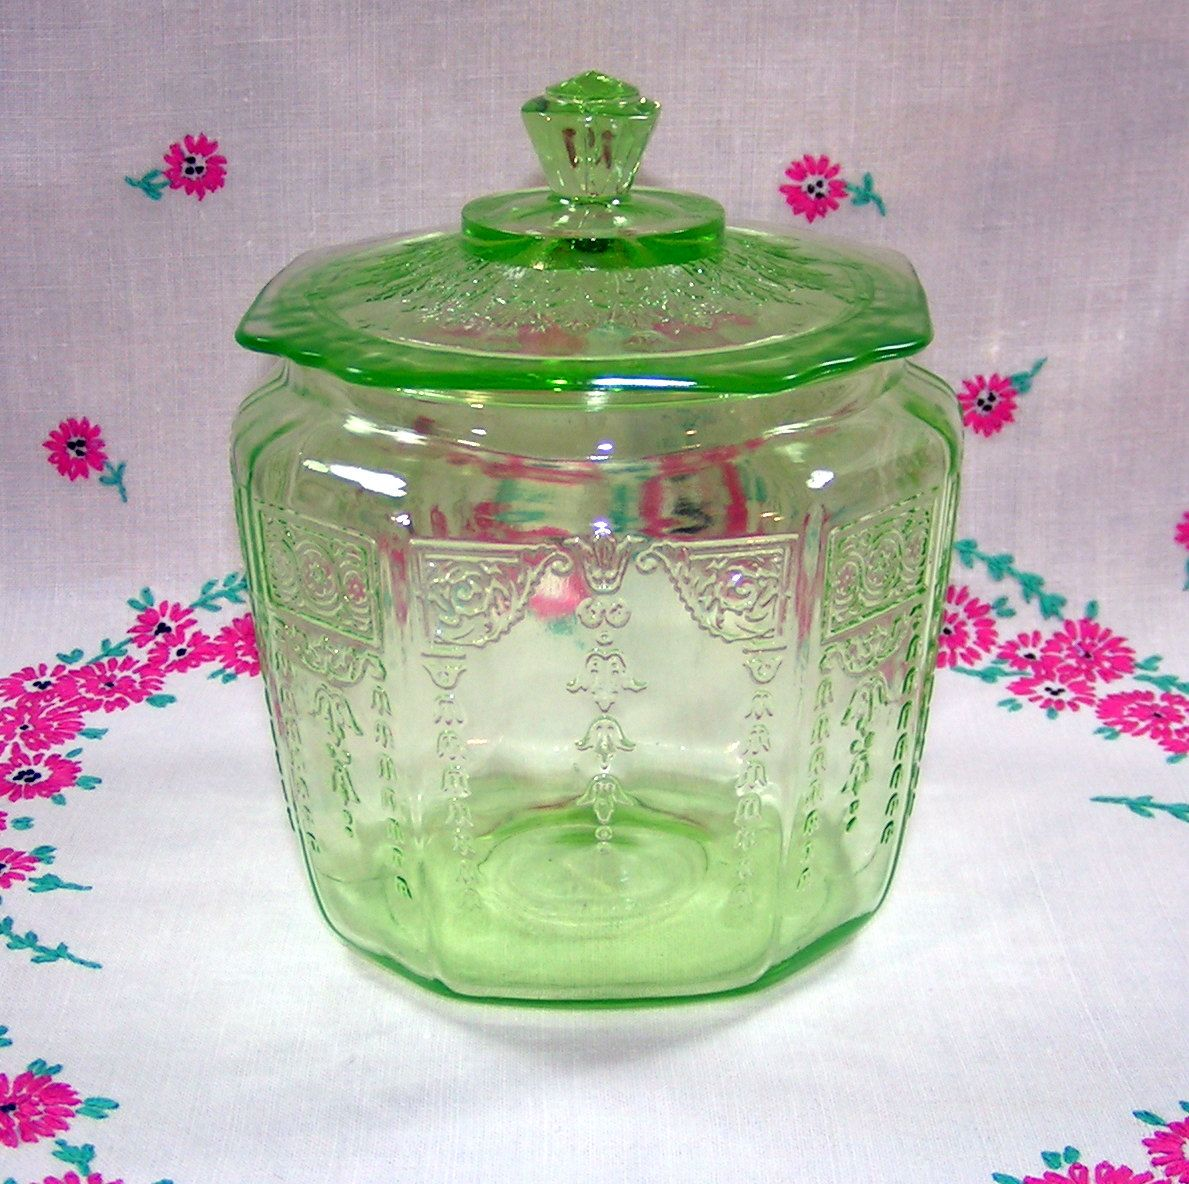 Green depression glass cookie jar hocking glass princess pattern green depression glass cookie jar hocking glass princess pattern reviewsmspy